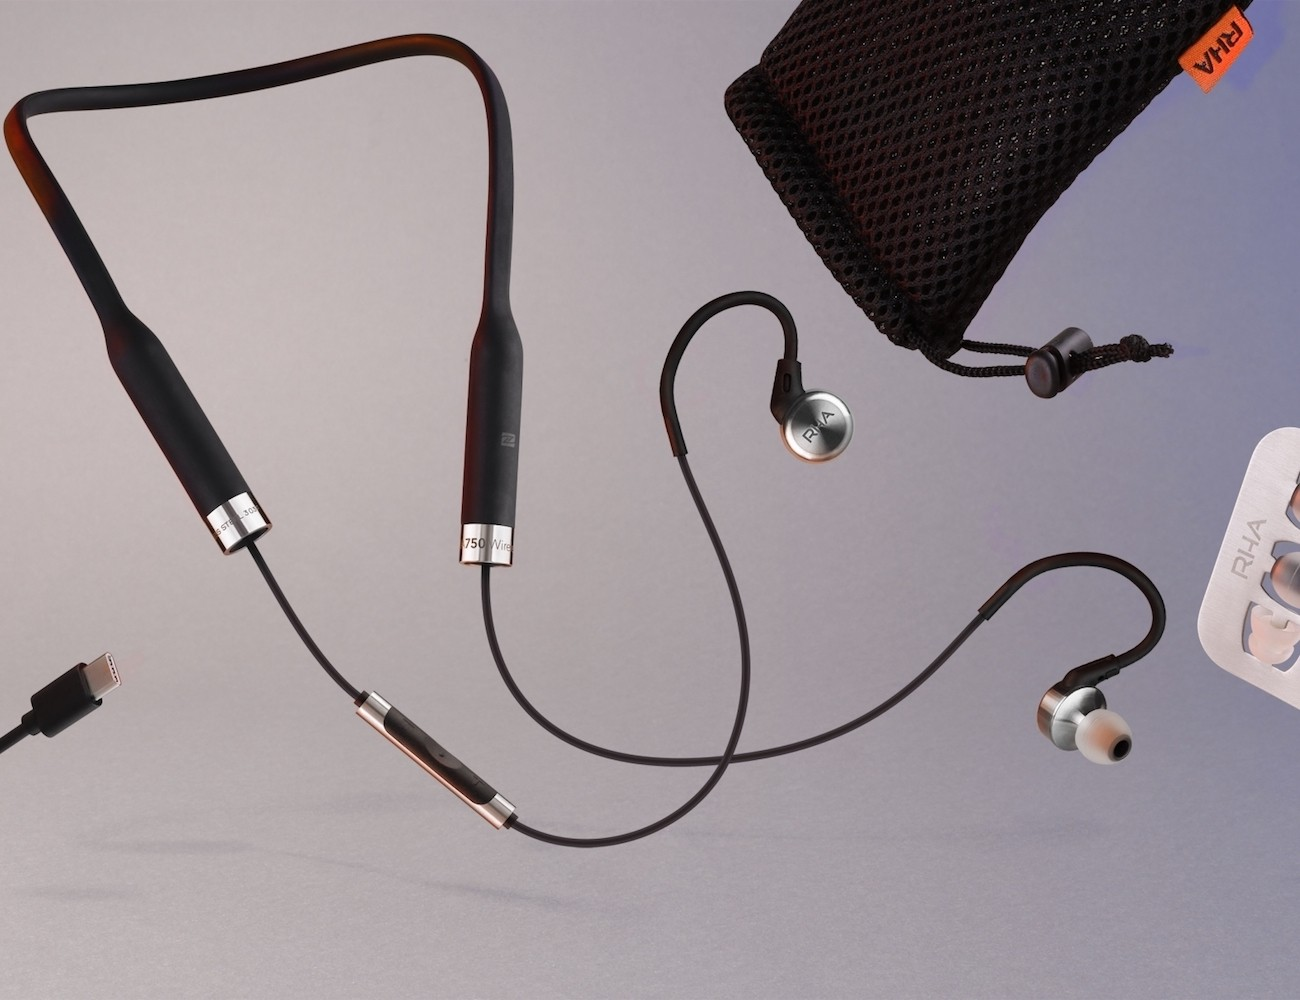 RHA MA750 Bluetooth Headphones